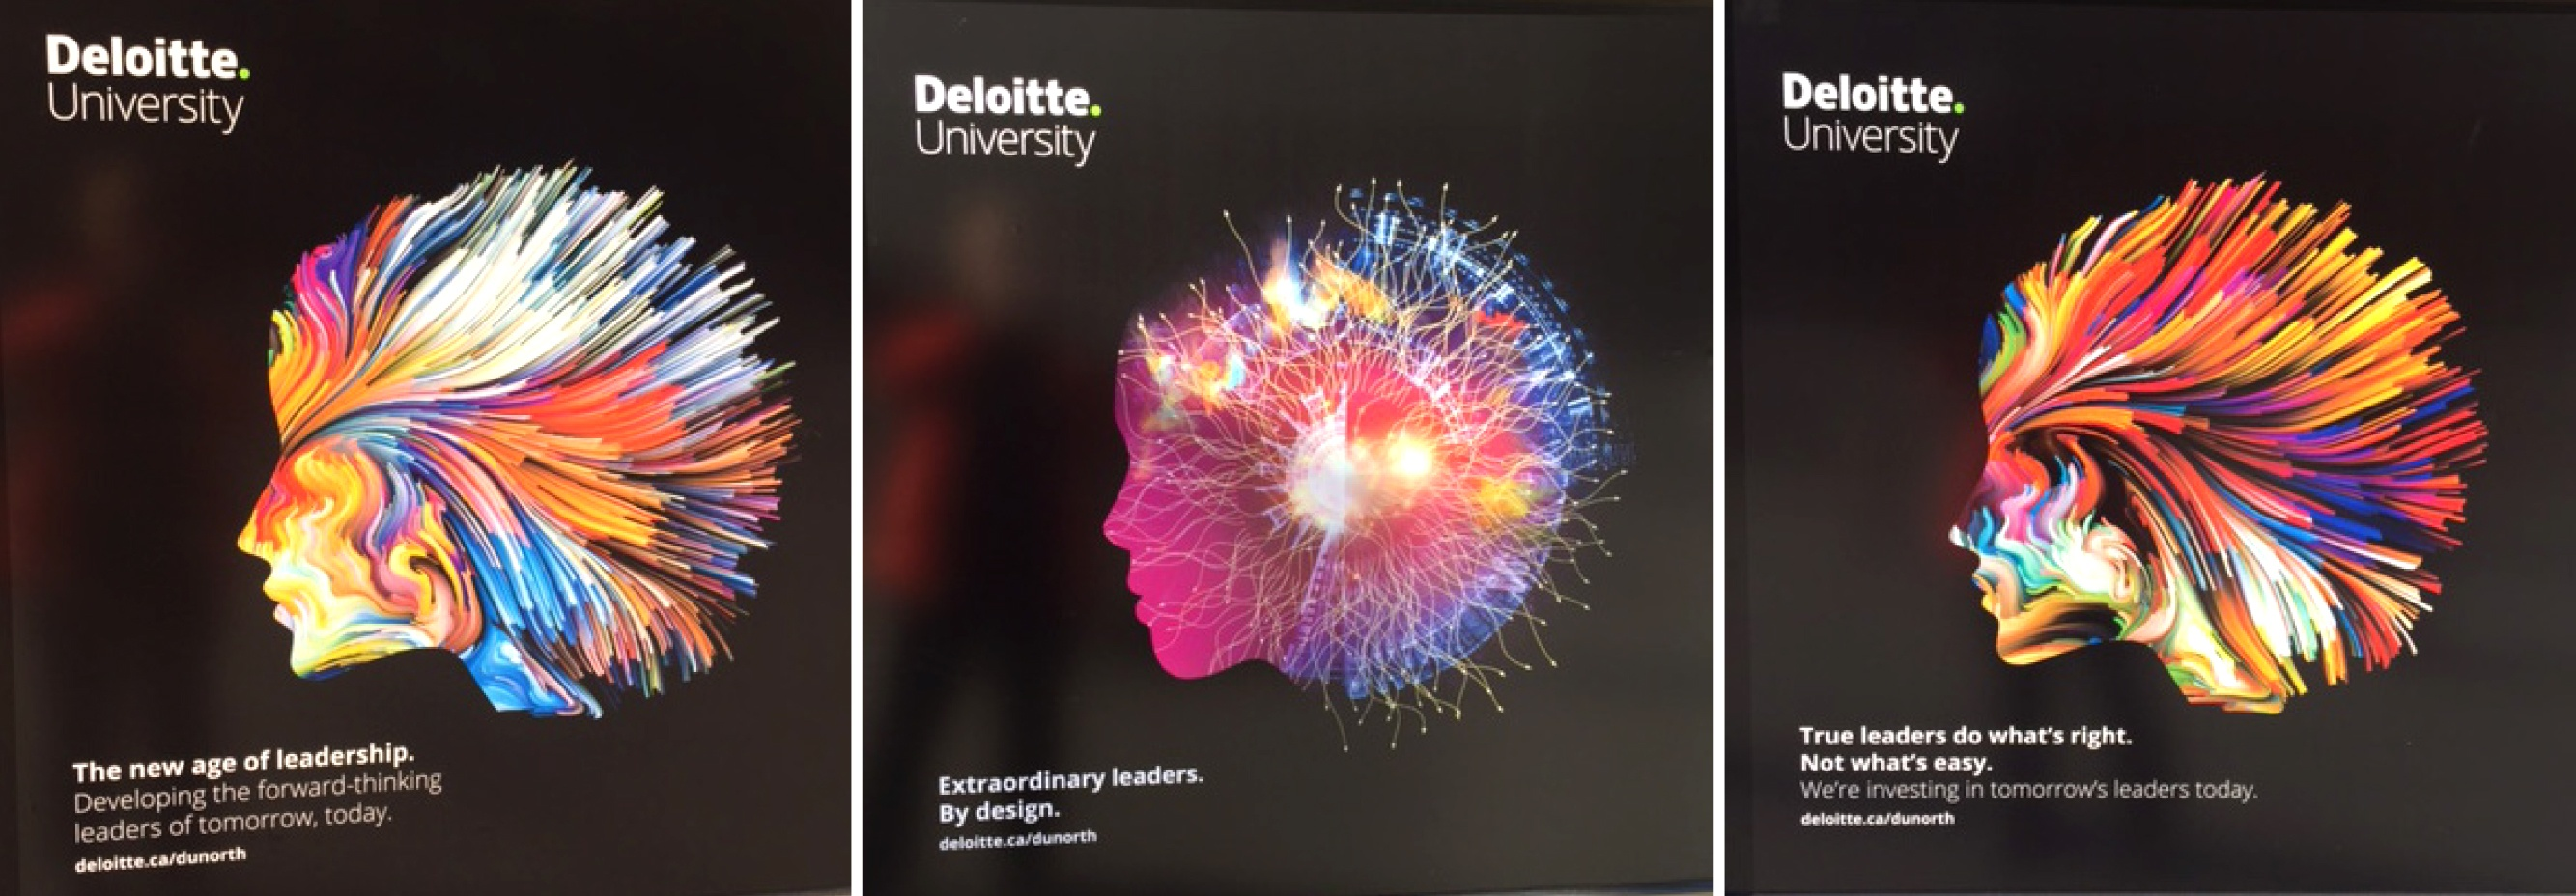 Deloitte-right-path-aboutmybrain.jpg